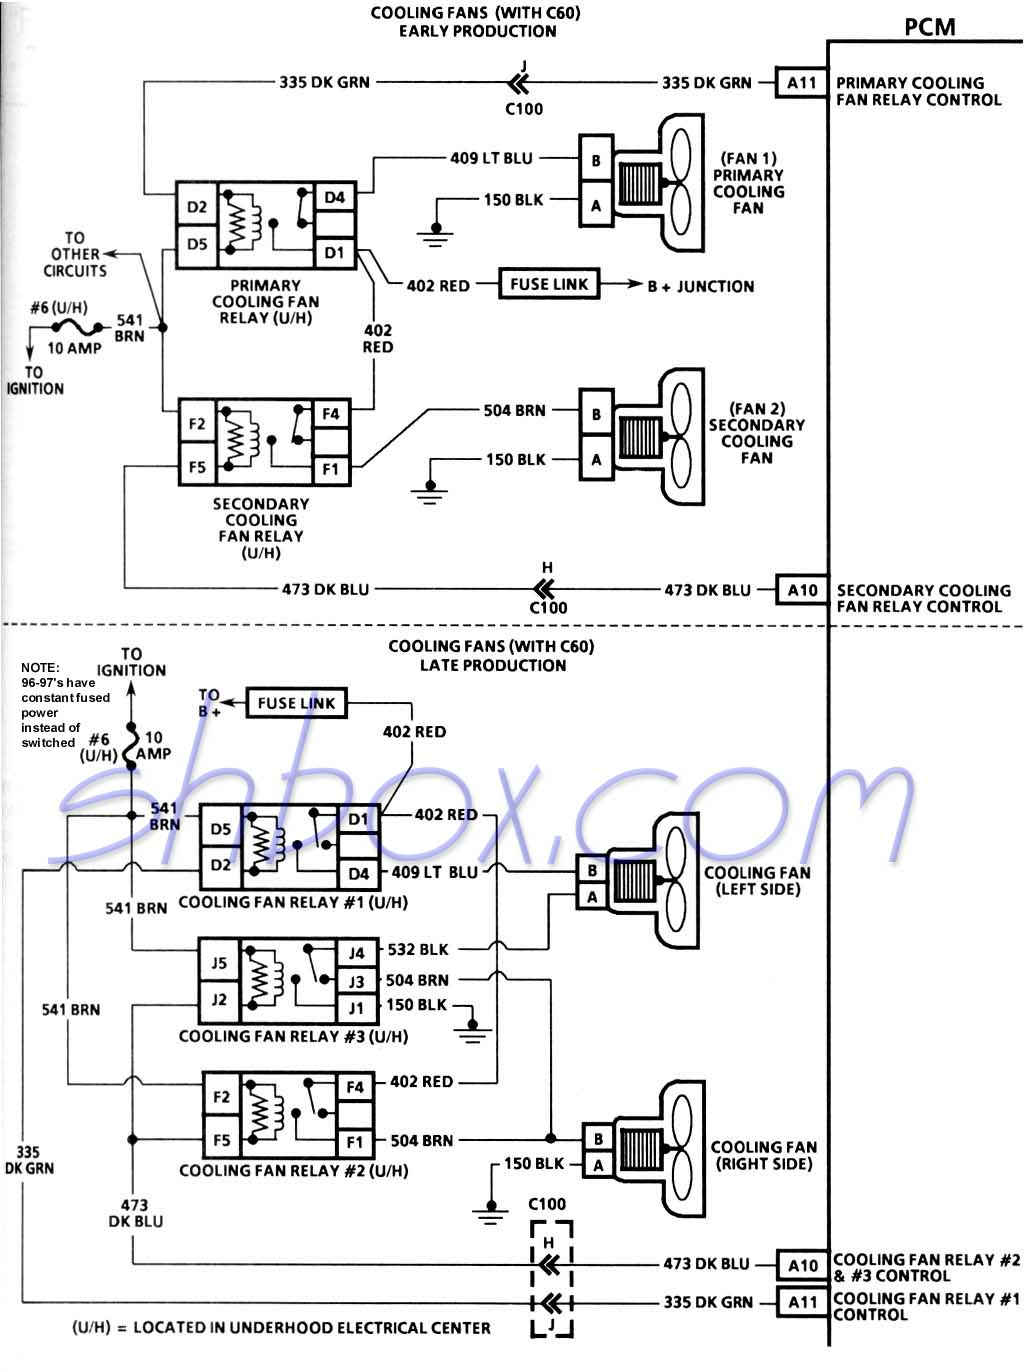 91 240sx fuse box wiring diagram a4cf 1991 miata fuse box wiring resources  a4cf 1991 miata fuse box wiring resources